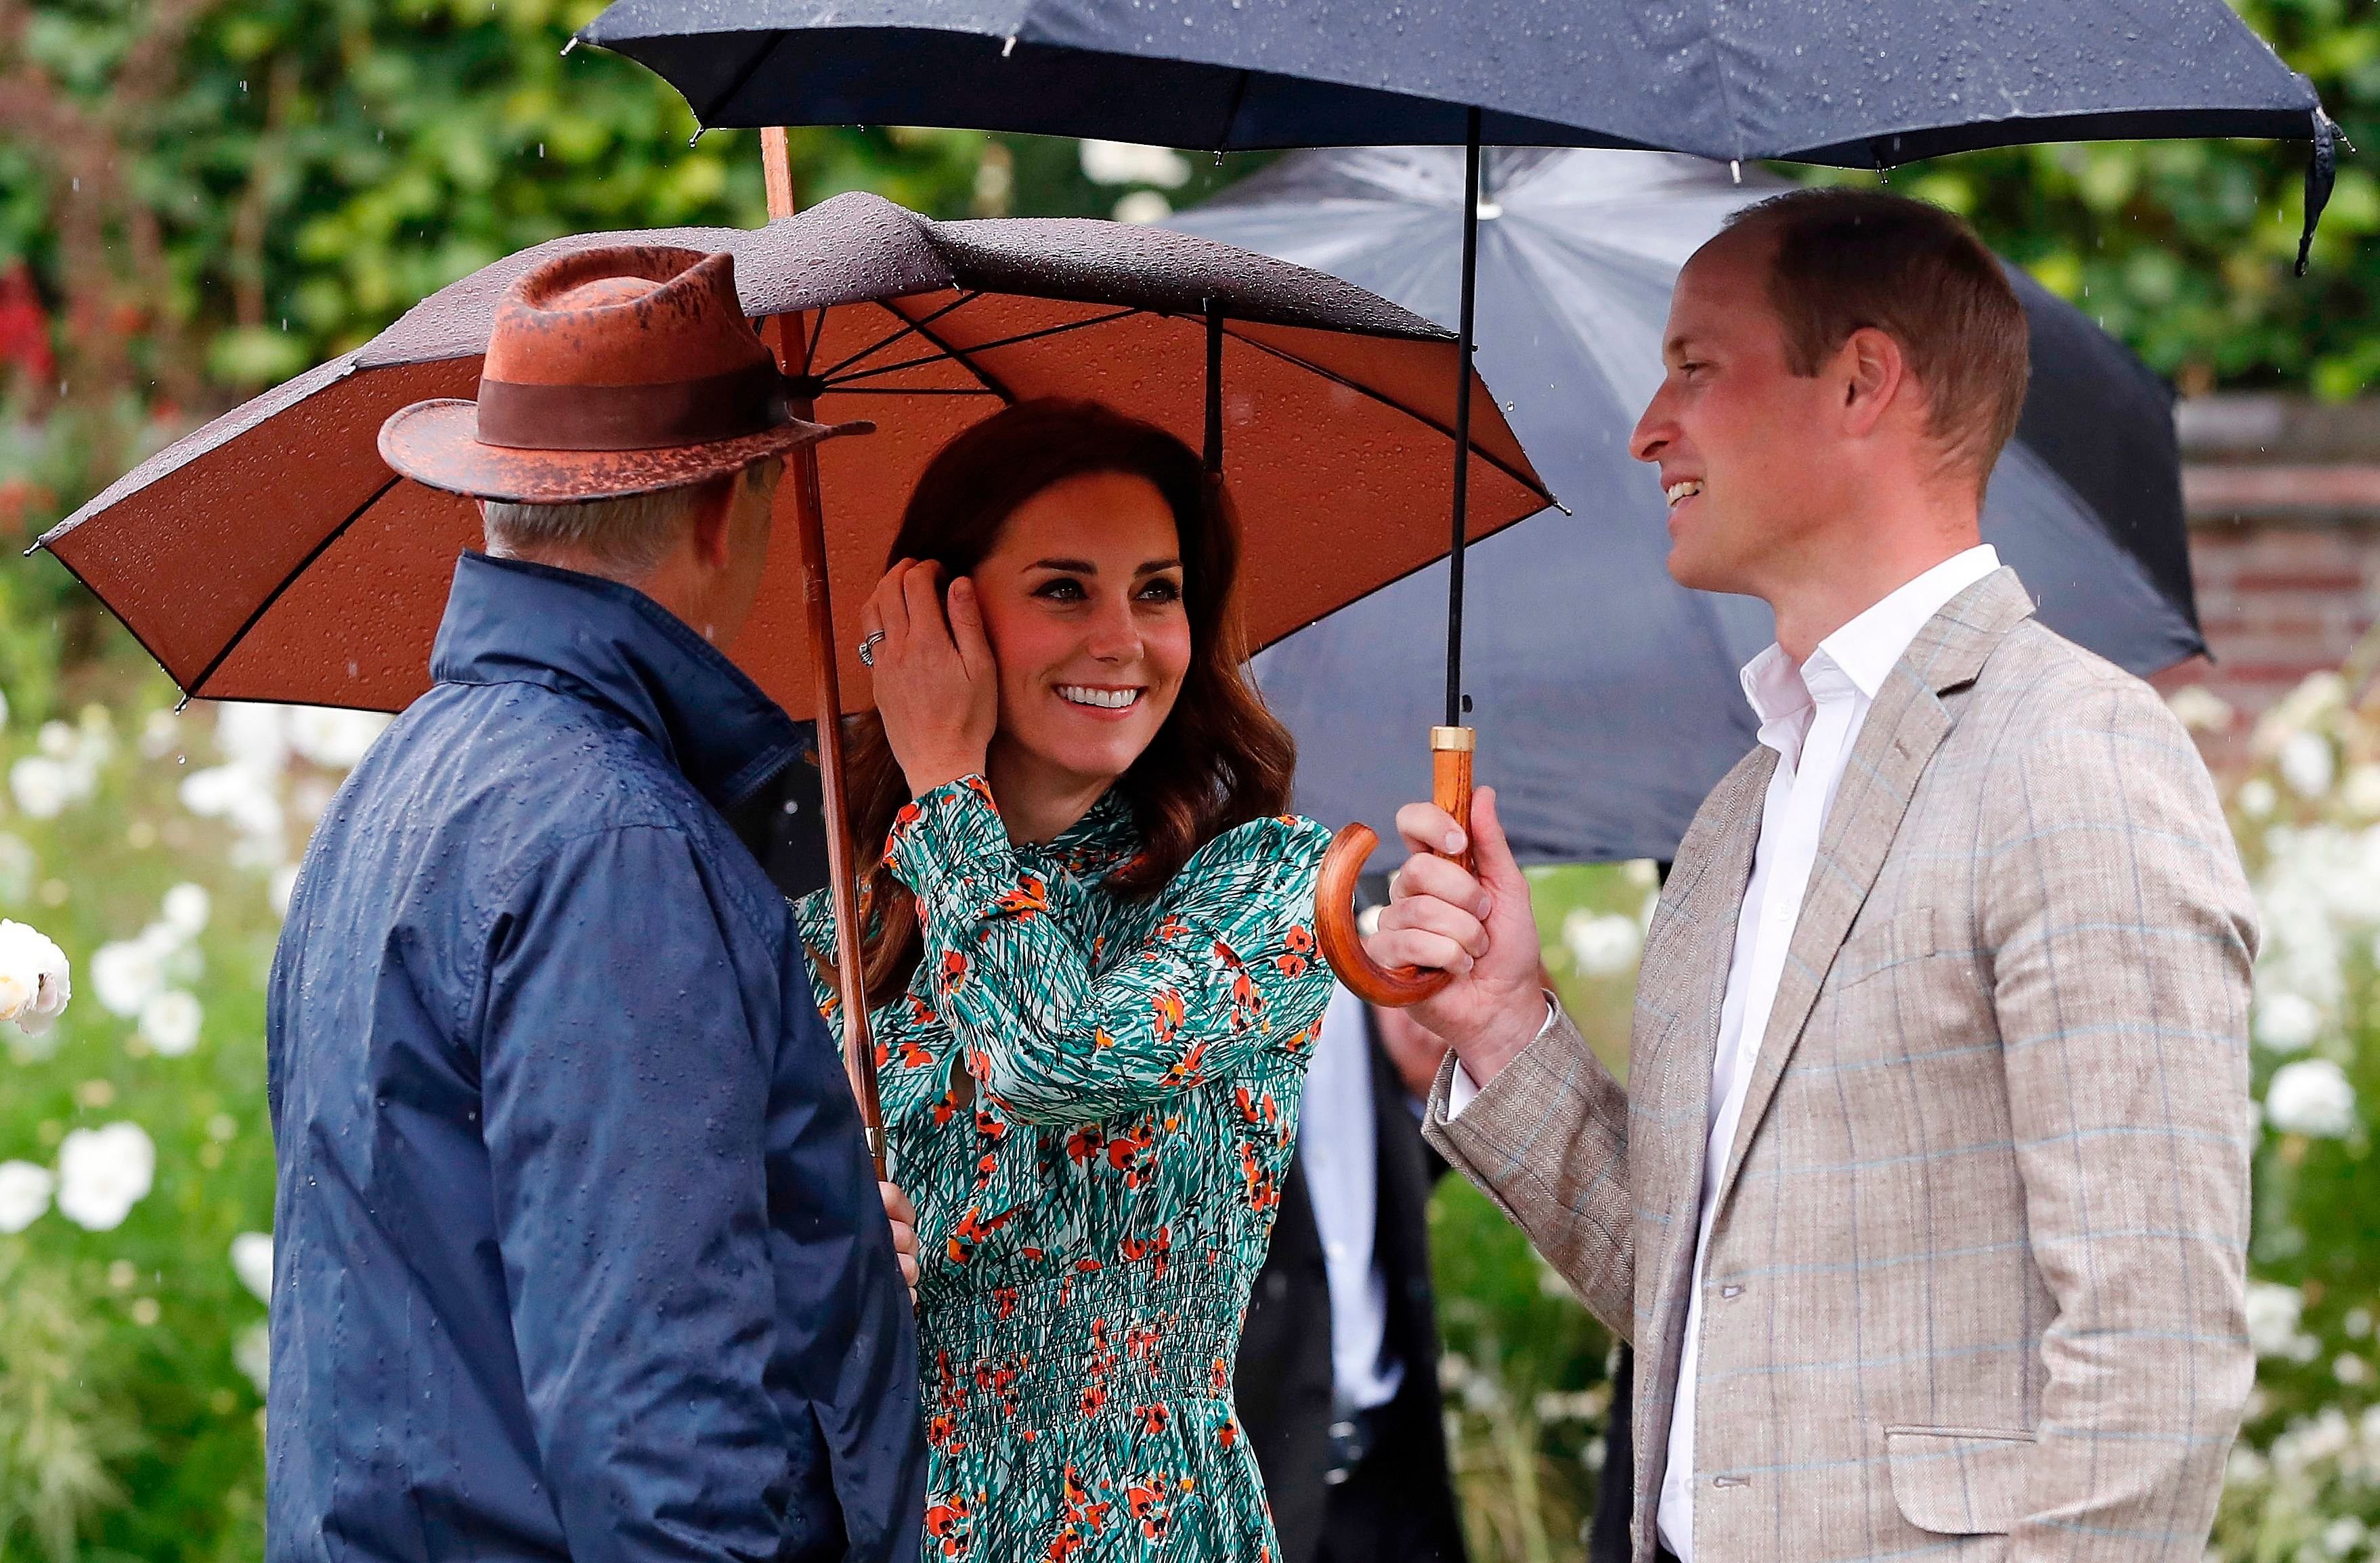 Britain's Prince William, Duke of Cambridge (R), and his wife Britain's Catherine, Duchess of Cambridge (C), shelter from the rain beneath umbrellas as they attend an event at the memorial gardens in Kensington Palace, west London on August 30, 2017. Princes William and Harry prepared to pay tribute to their late mother Princess Diana on Wednesday for the 20th anniversary of her death as wellwishers left candles and flowers outside the gates of her former London residence. The Princes visited the Sunken Garden in the grounds of Kensington Palace, which this year has been transformed into a White Garden, dedicated to their late mother, Britain's Diana, Princess of Wales. / AFP PHOTO / POOL / Kirsty Wigglesworth        (Photo credit should read KIRSTY WIGGLESWORTH/AFP/Getty Images)